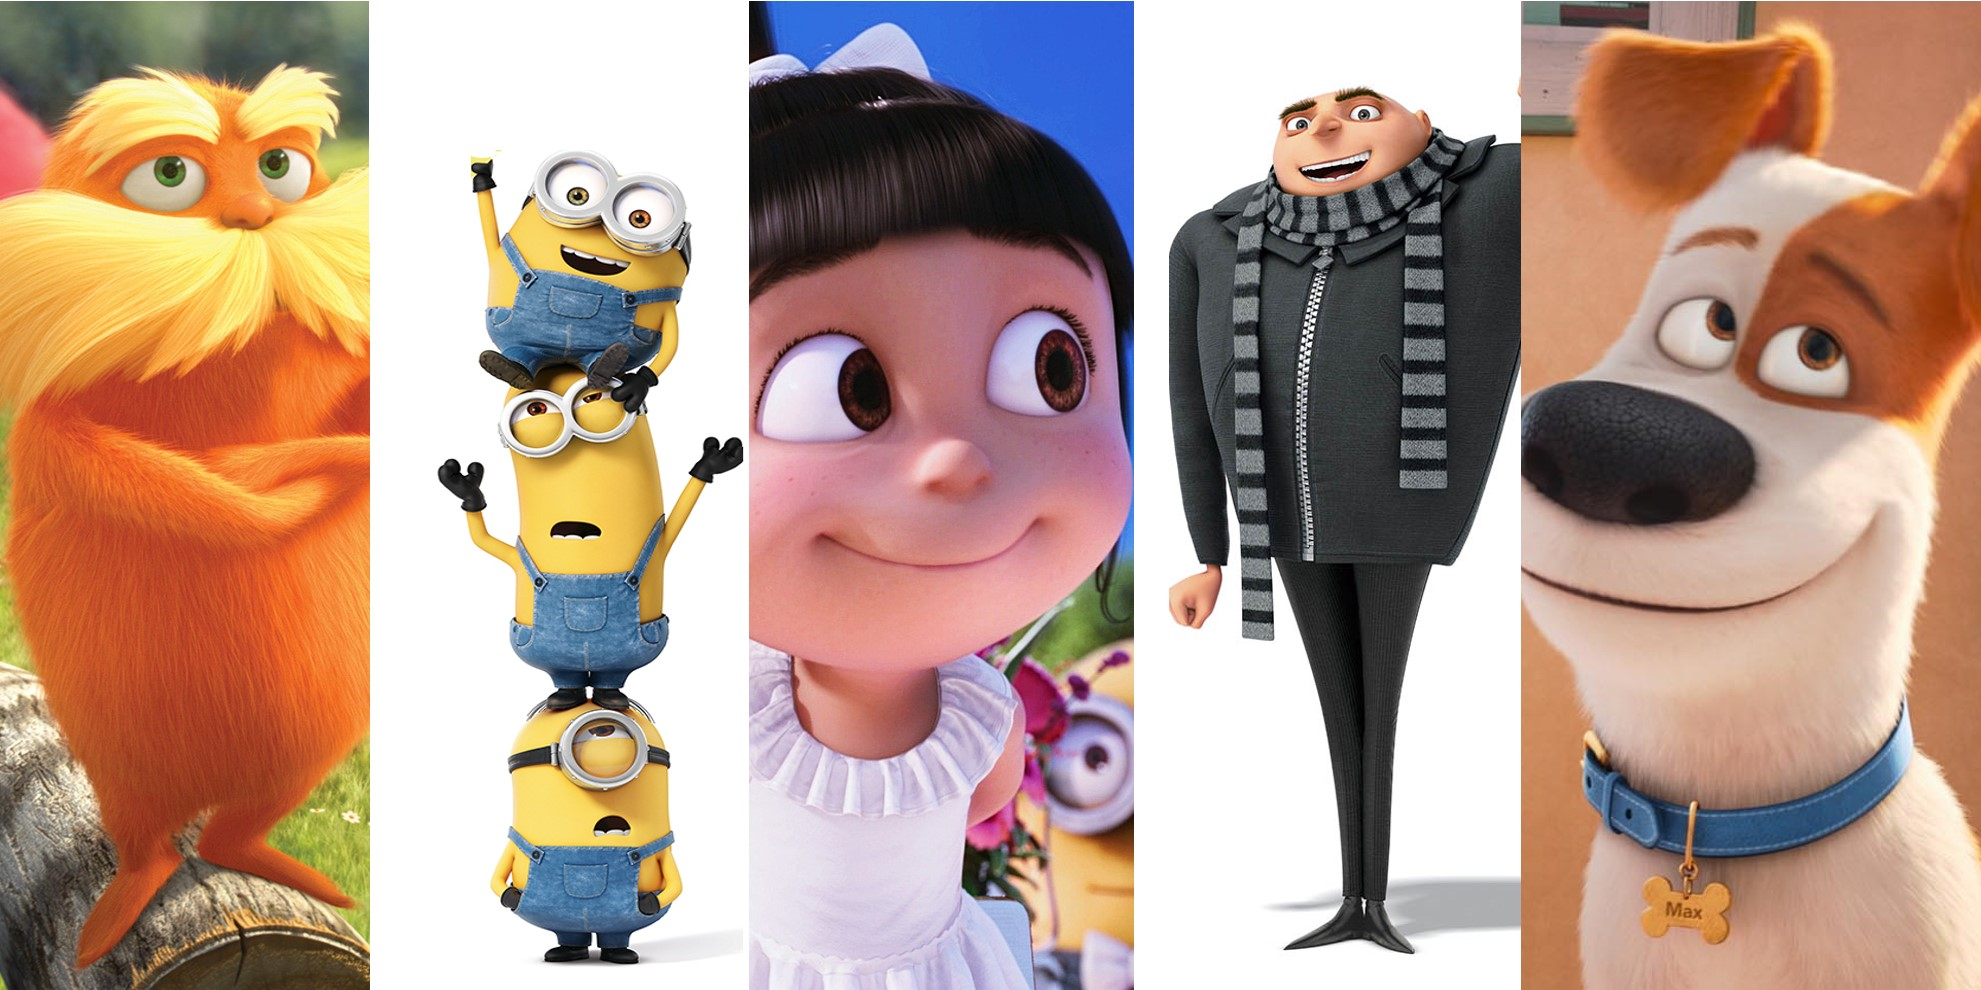 ILLUMINATION ENTERTAINMENT - Dossier Spécial Illumination Mac Guff LORAX MINIONS GRU THE SECRET LIFE OF PETS - Go with the Blog